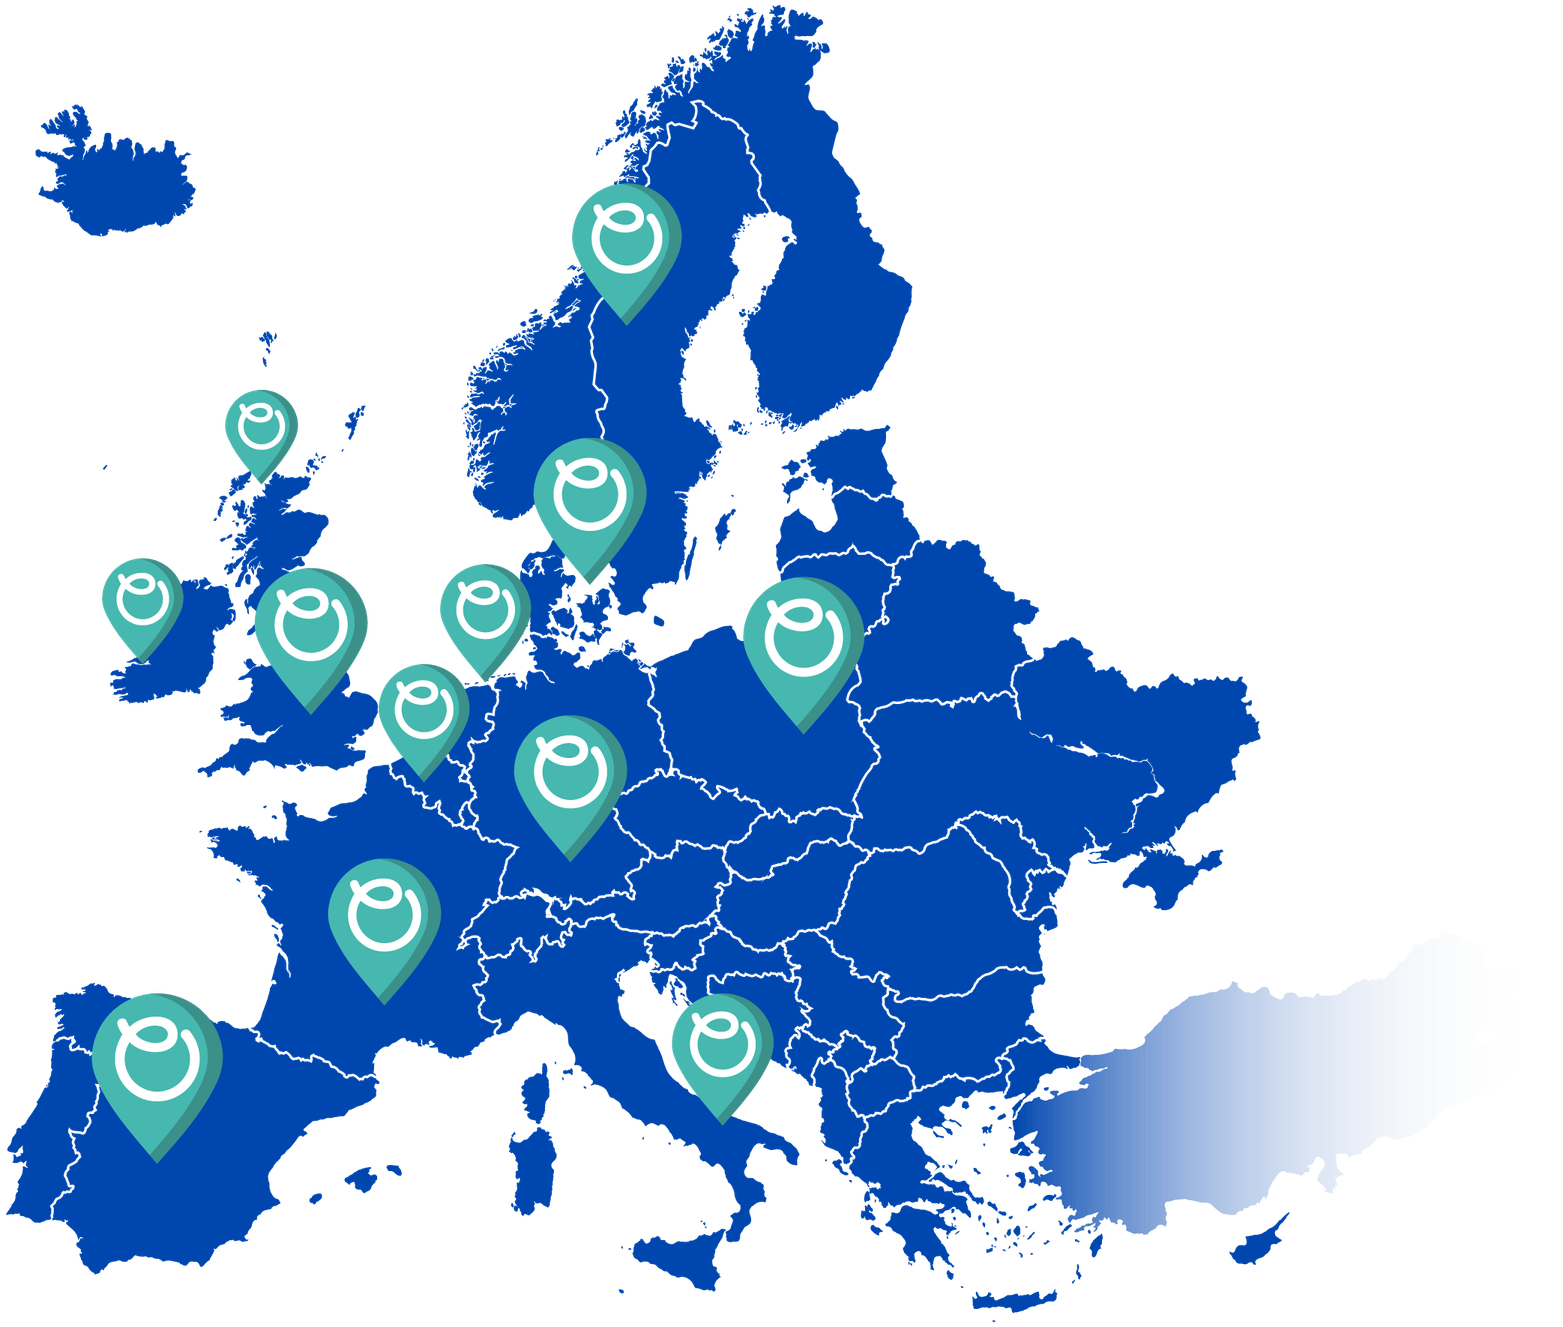 Ohme EV charger locations on map of Europe